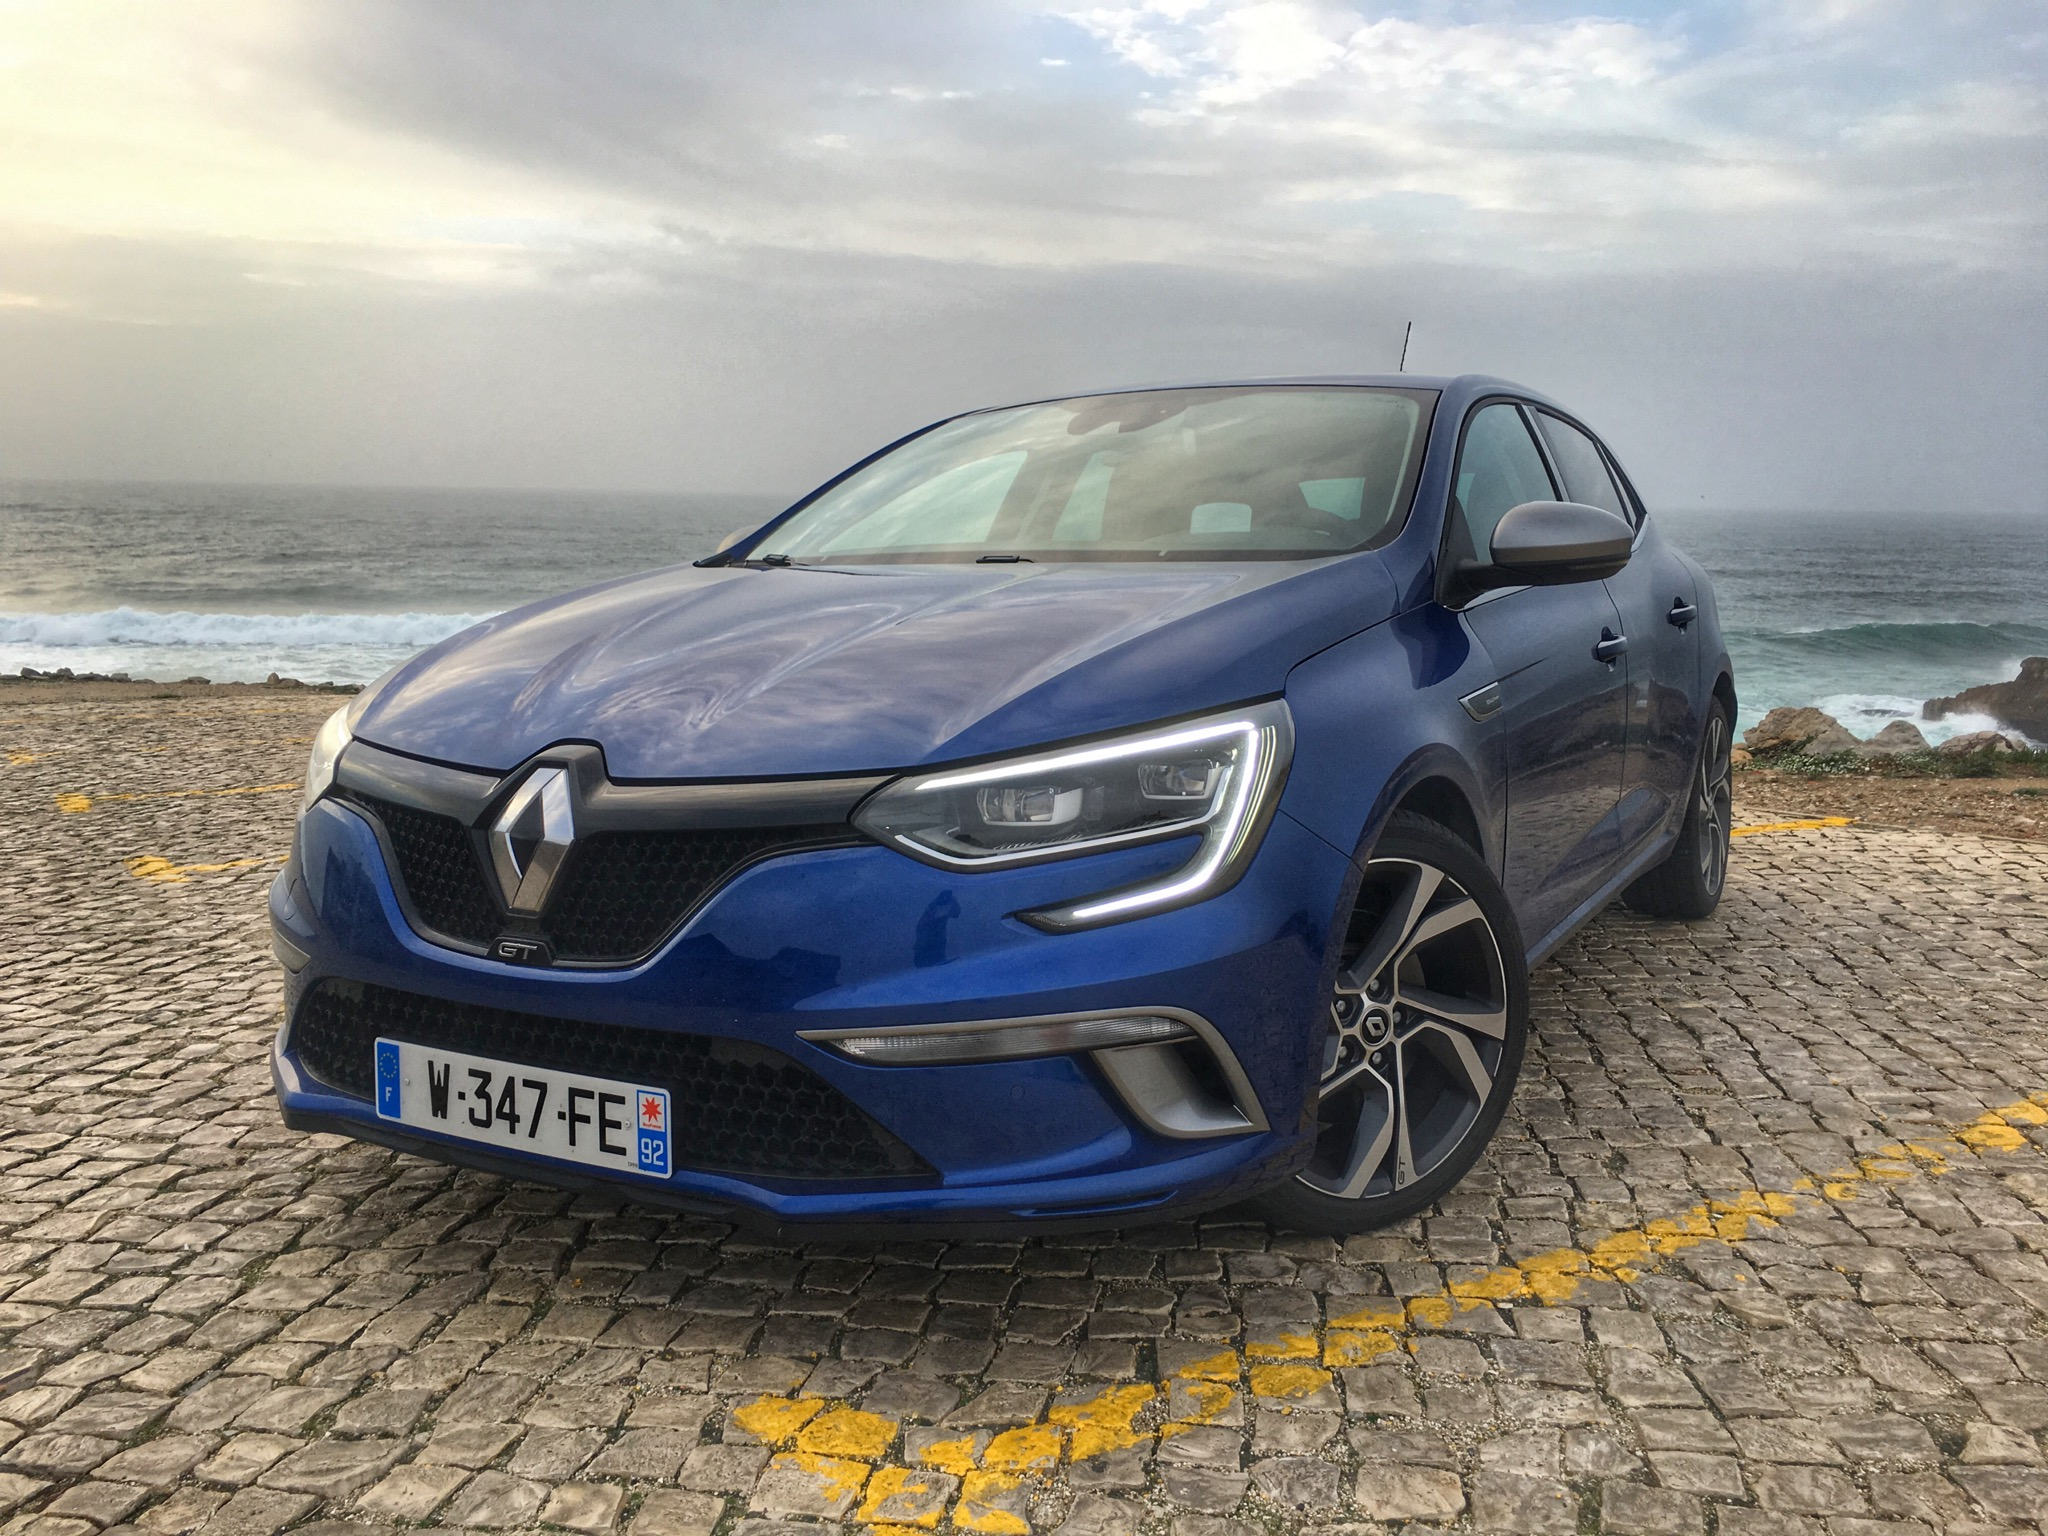 2016 Renault Megane Gt Front Profile (Photo 20 of 27)